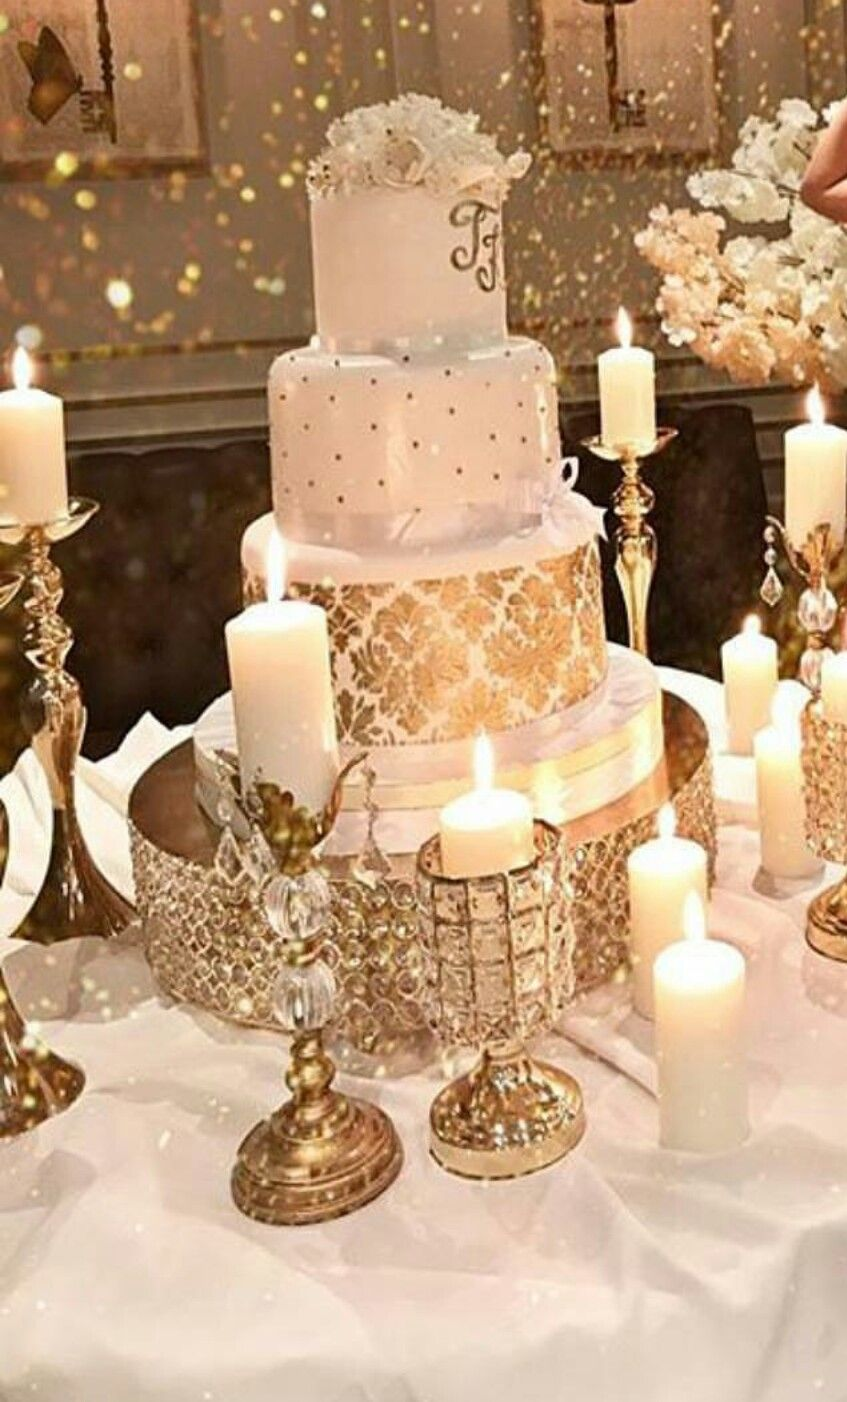 Wedding cake table decor ideas  Cake table decor Switch large candles for Eiffel towers  mesa de